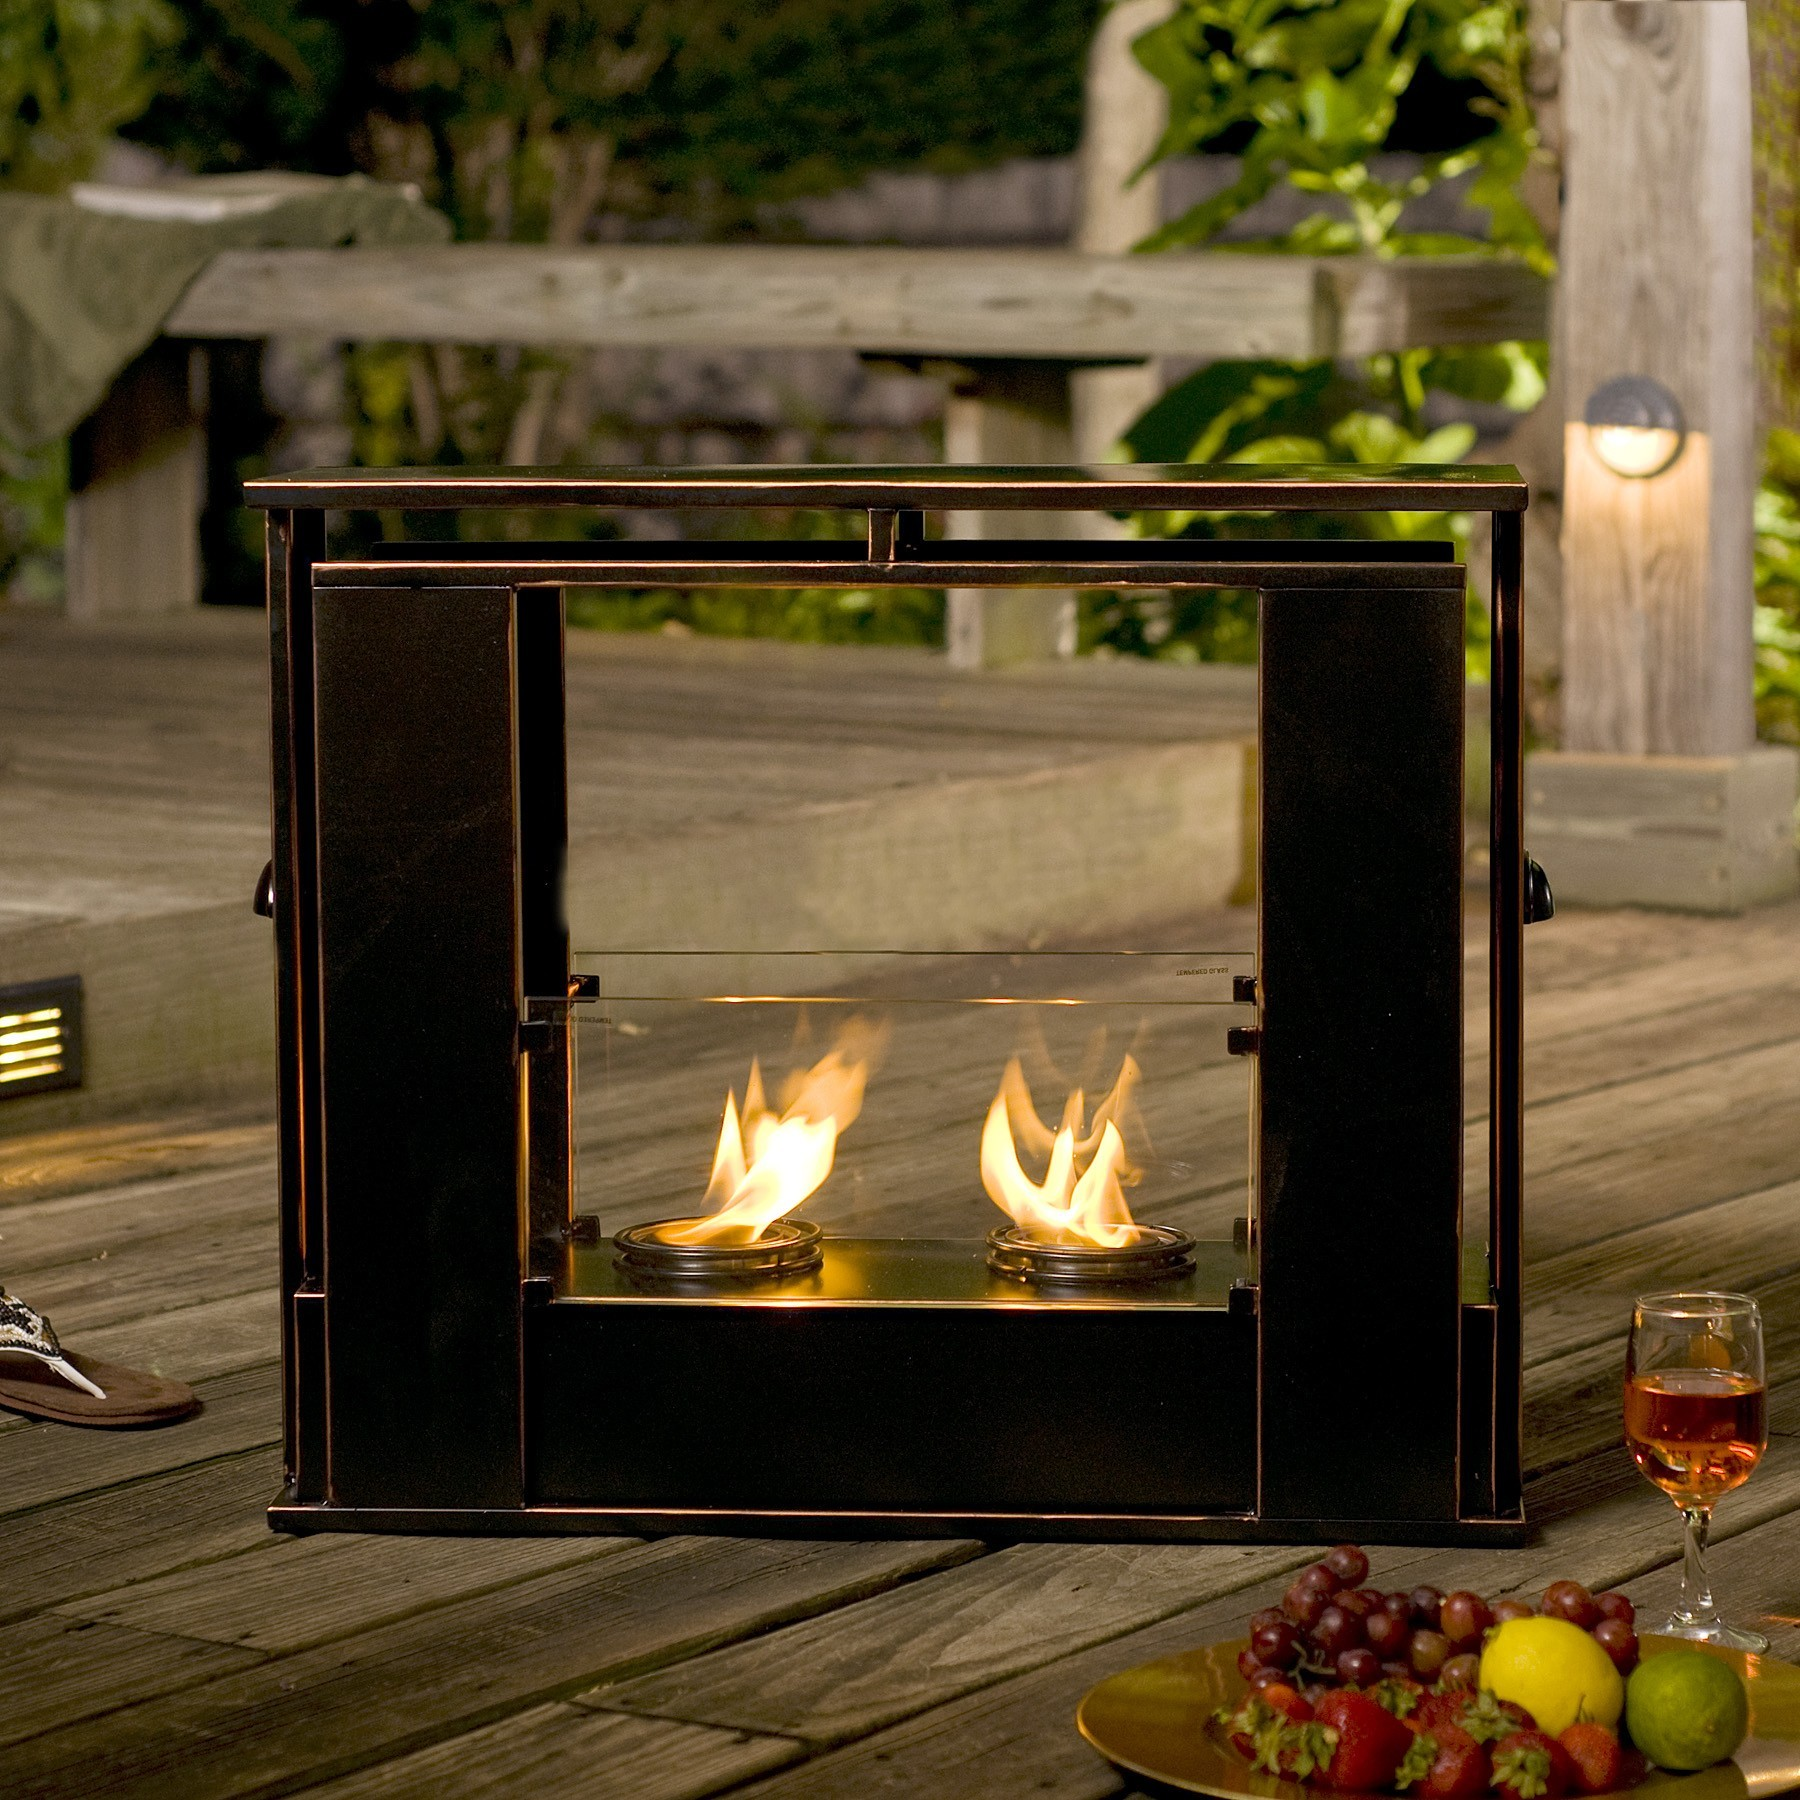 Portable Indoor Outdoor Fireplace | FIREPLACE DESIGN IDEAS